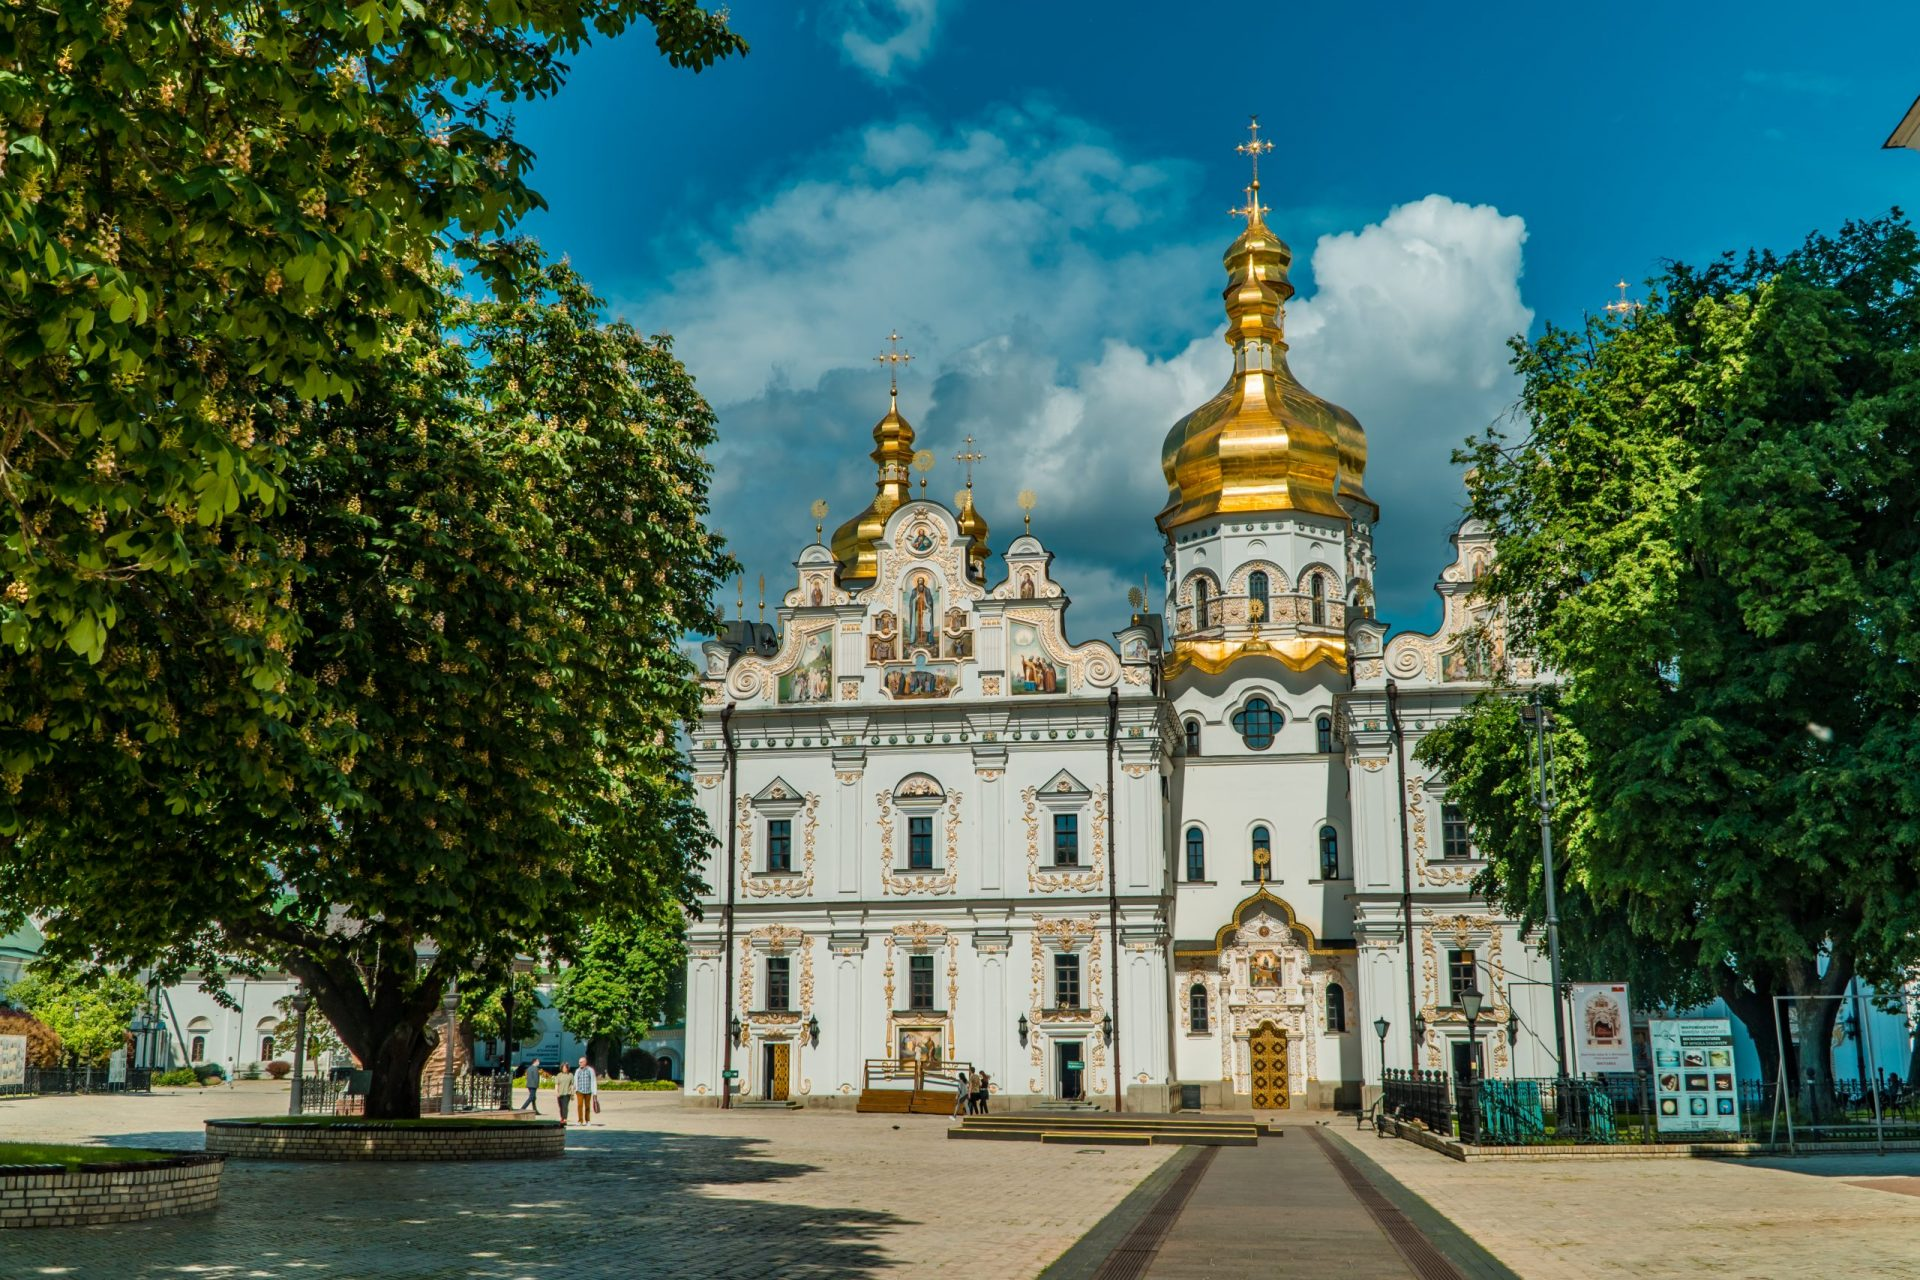 Places to visit in Kiev - panoramic street-level view of the Cathedral of the Dormition inside Kyiv Caves (Pechersk Lavra)